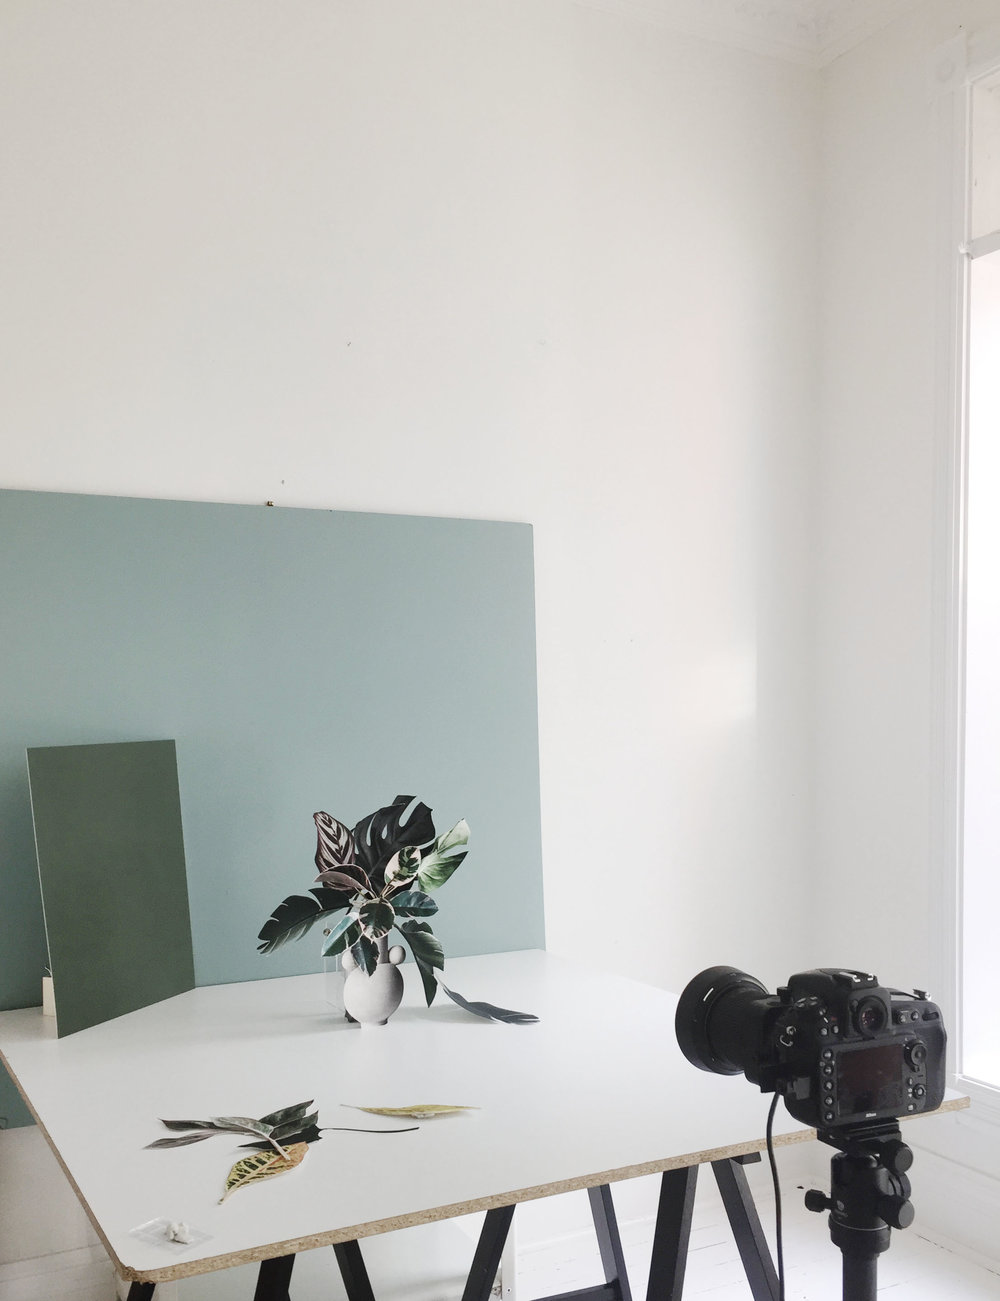 PhotoSynthesisI_Camera_BTS.jpg